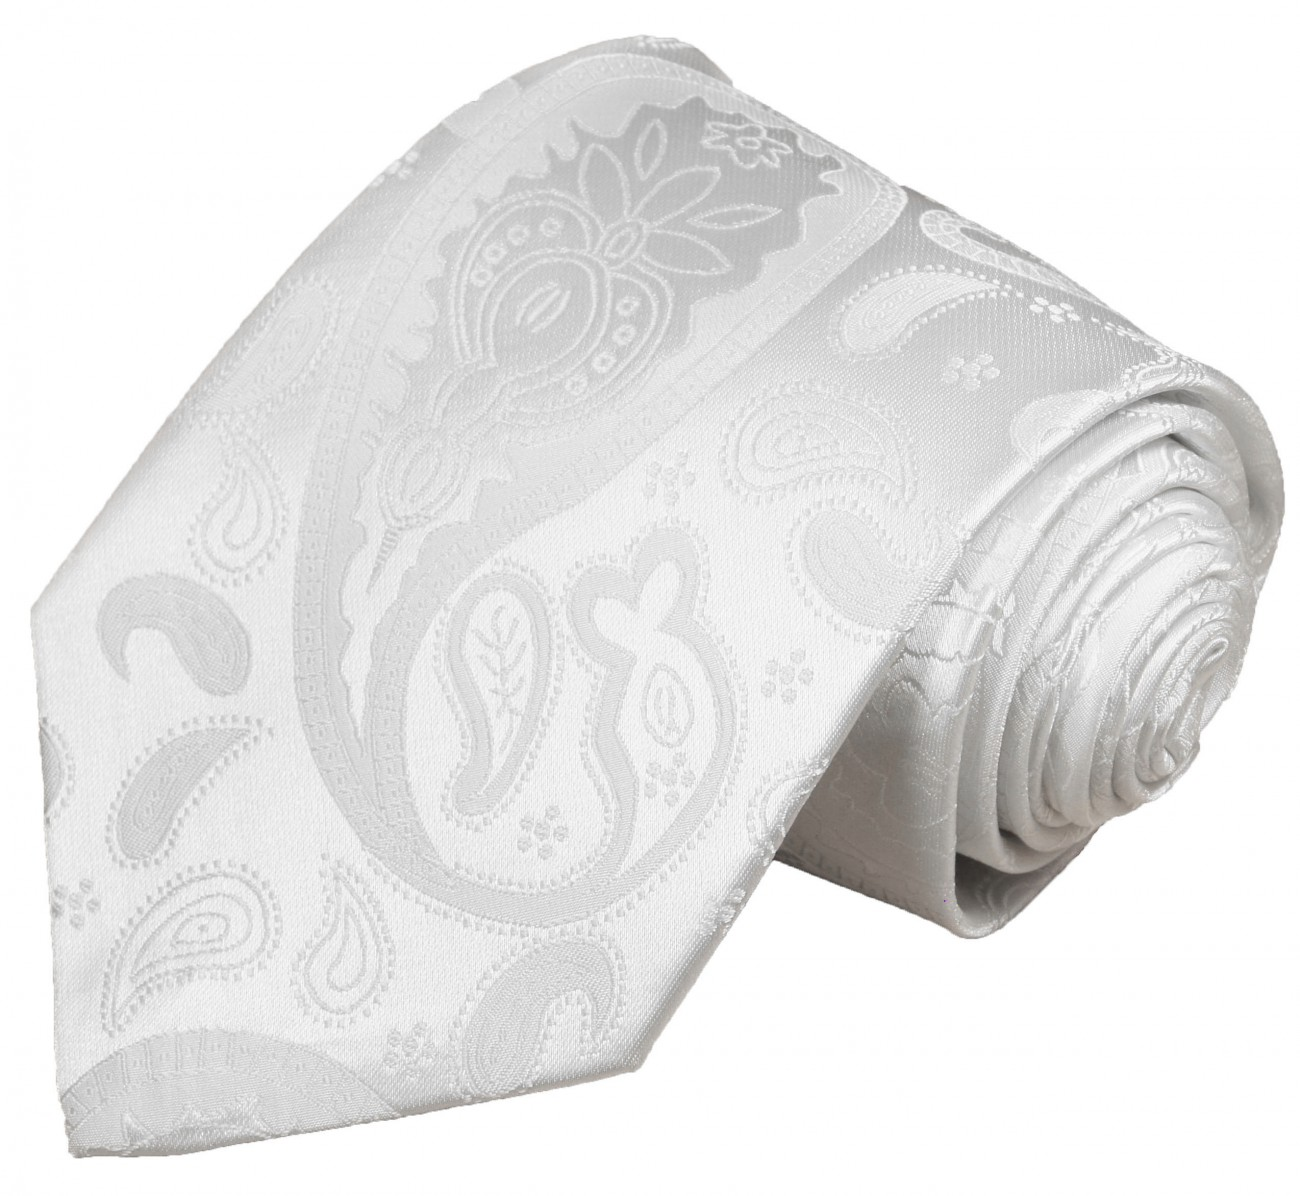 White tie for wedding paisley pattern v17